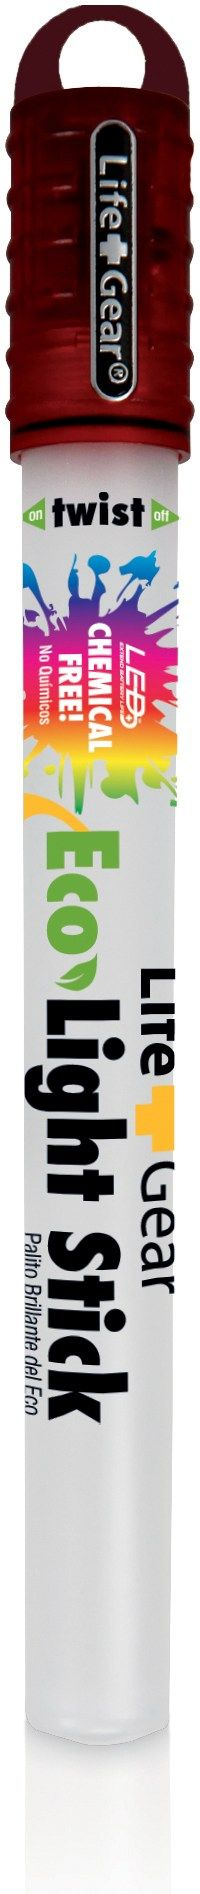 Life Gear Eco Light Stick at REI.com